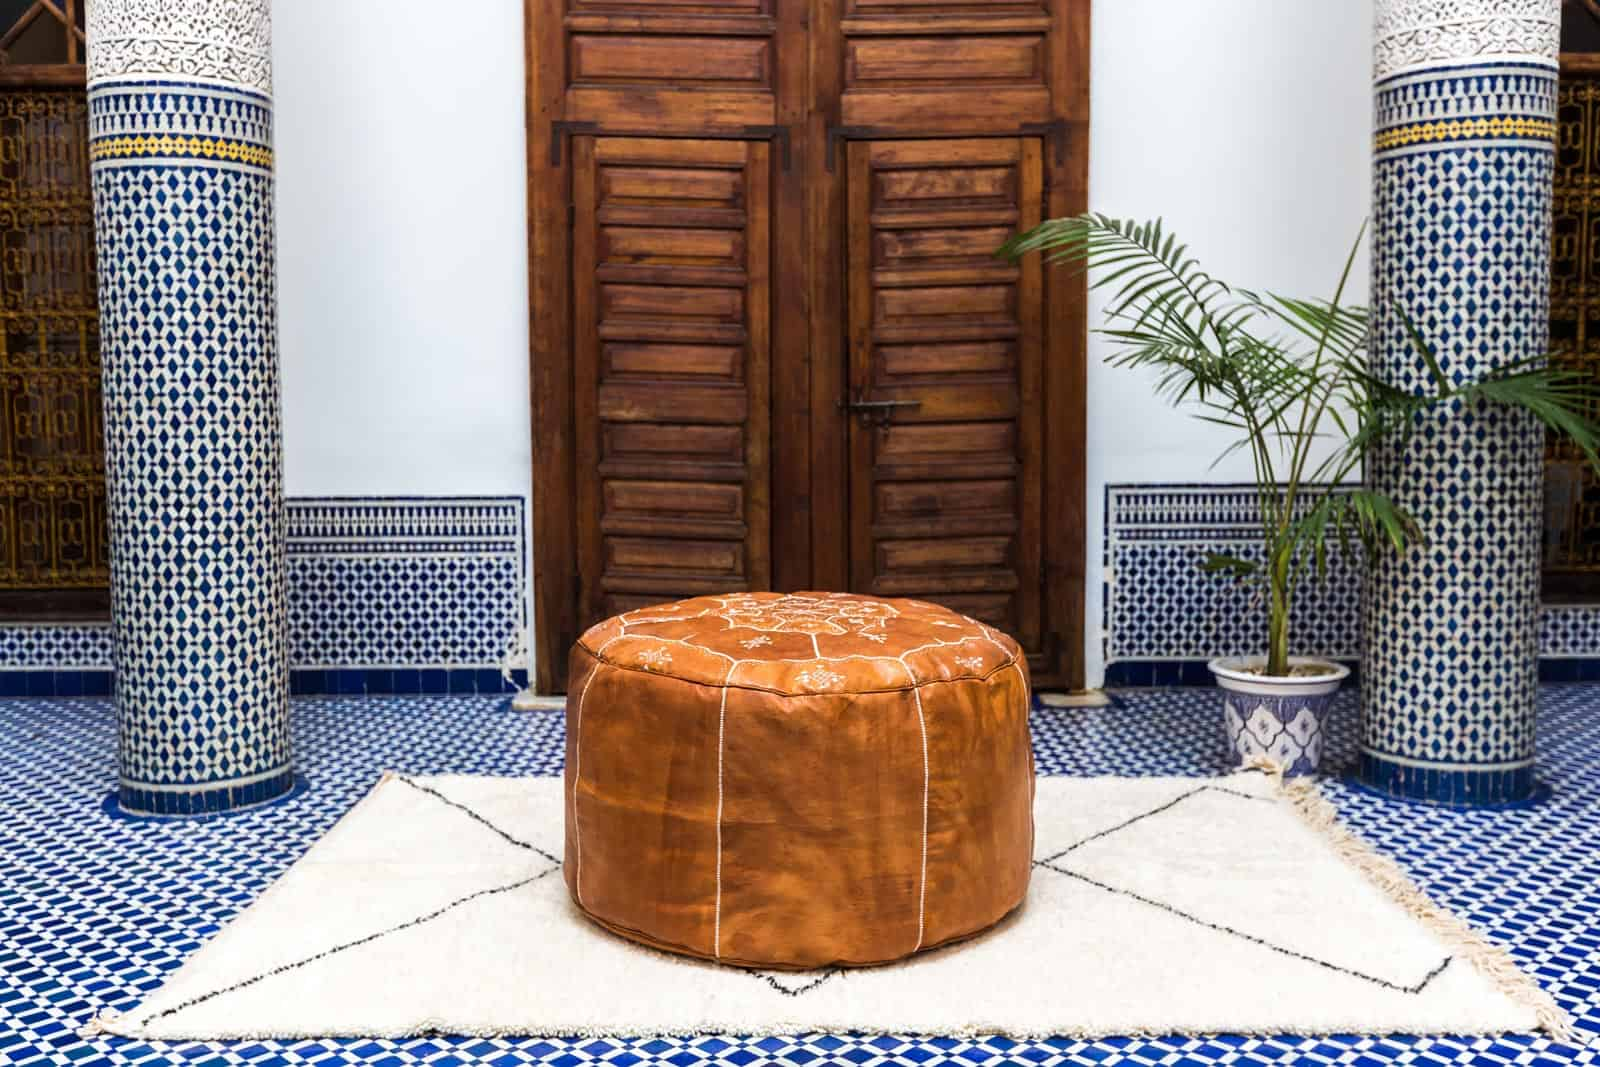 Enjoyable History And Modern Uses Of A Moroccan Leather Pouf Machost Co Dining Chair Design Ideas Machostcouk